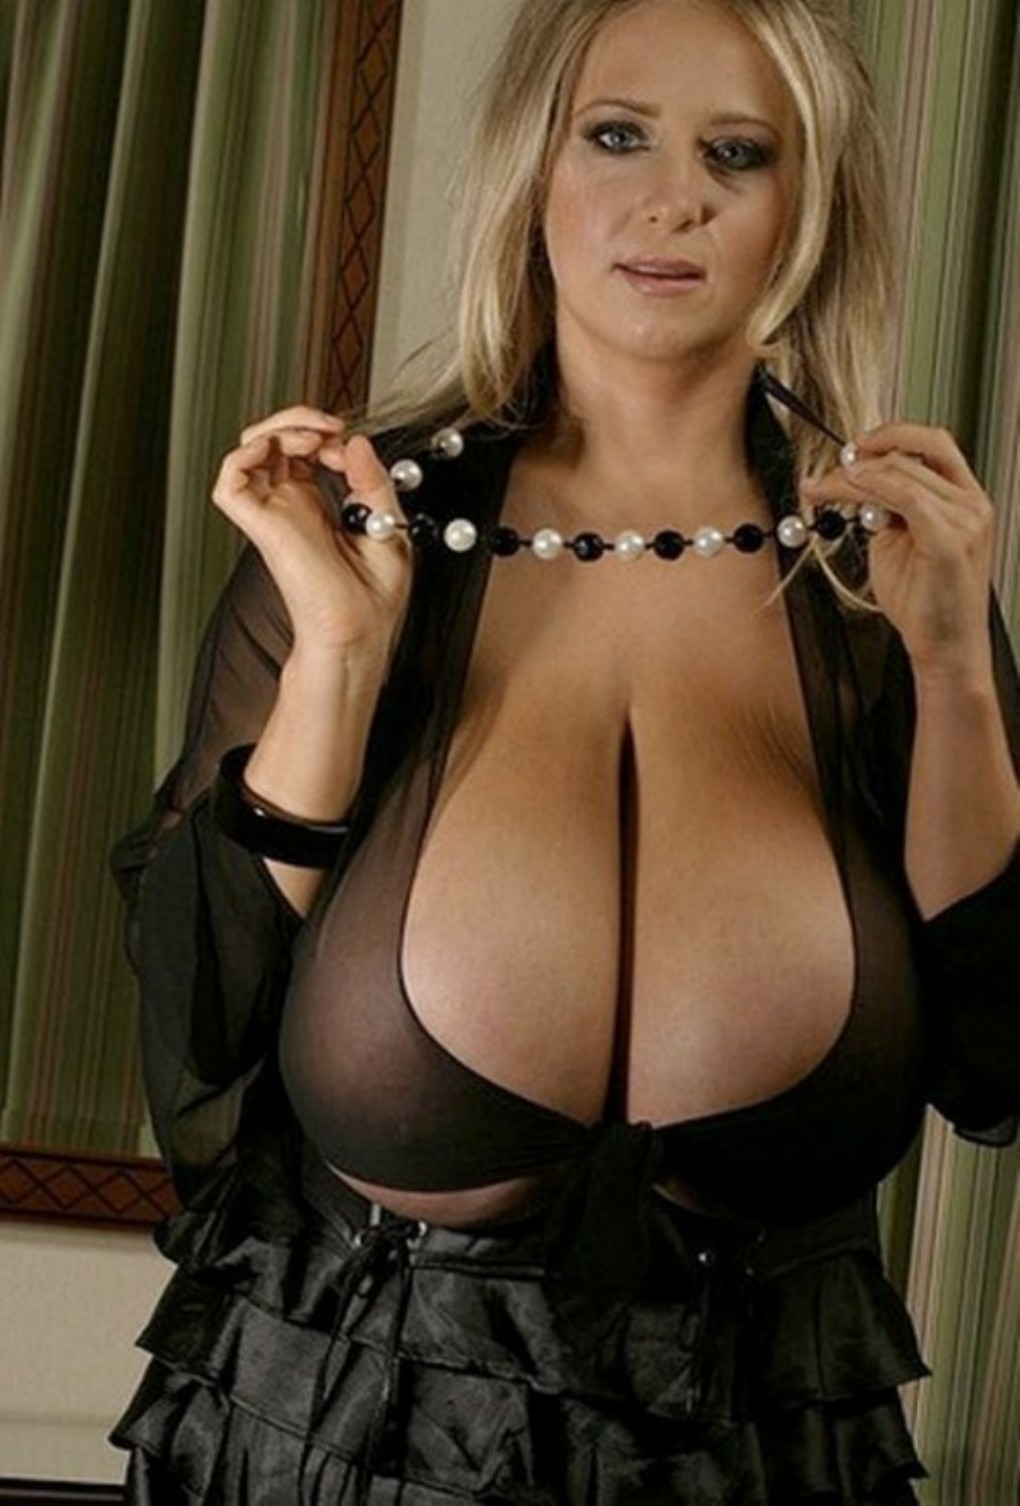 Watch wild big tits of mature babes! Huge melons and hard nipples can ...: galleries2.adult-empire.com/9620/513153/2666/index.php